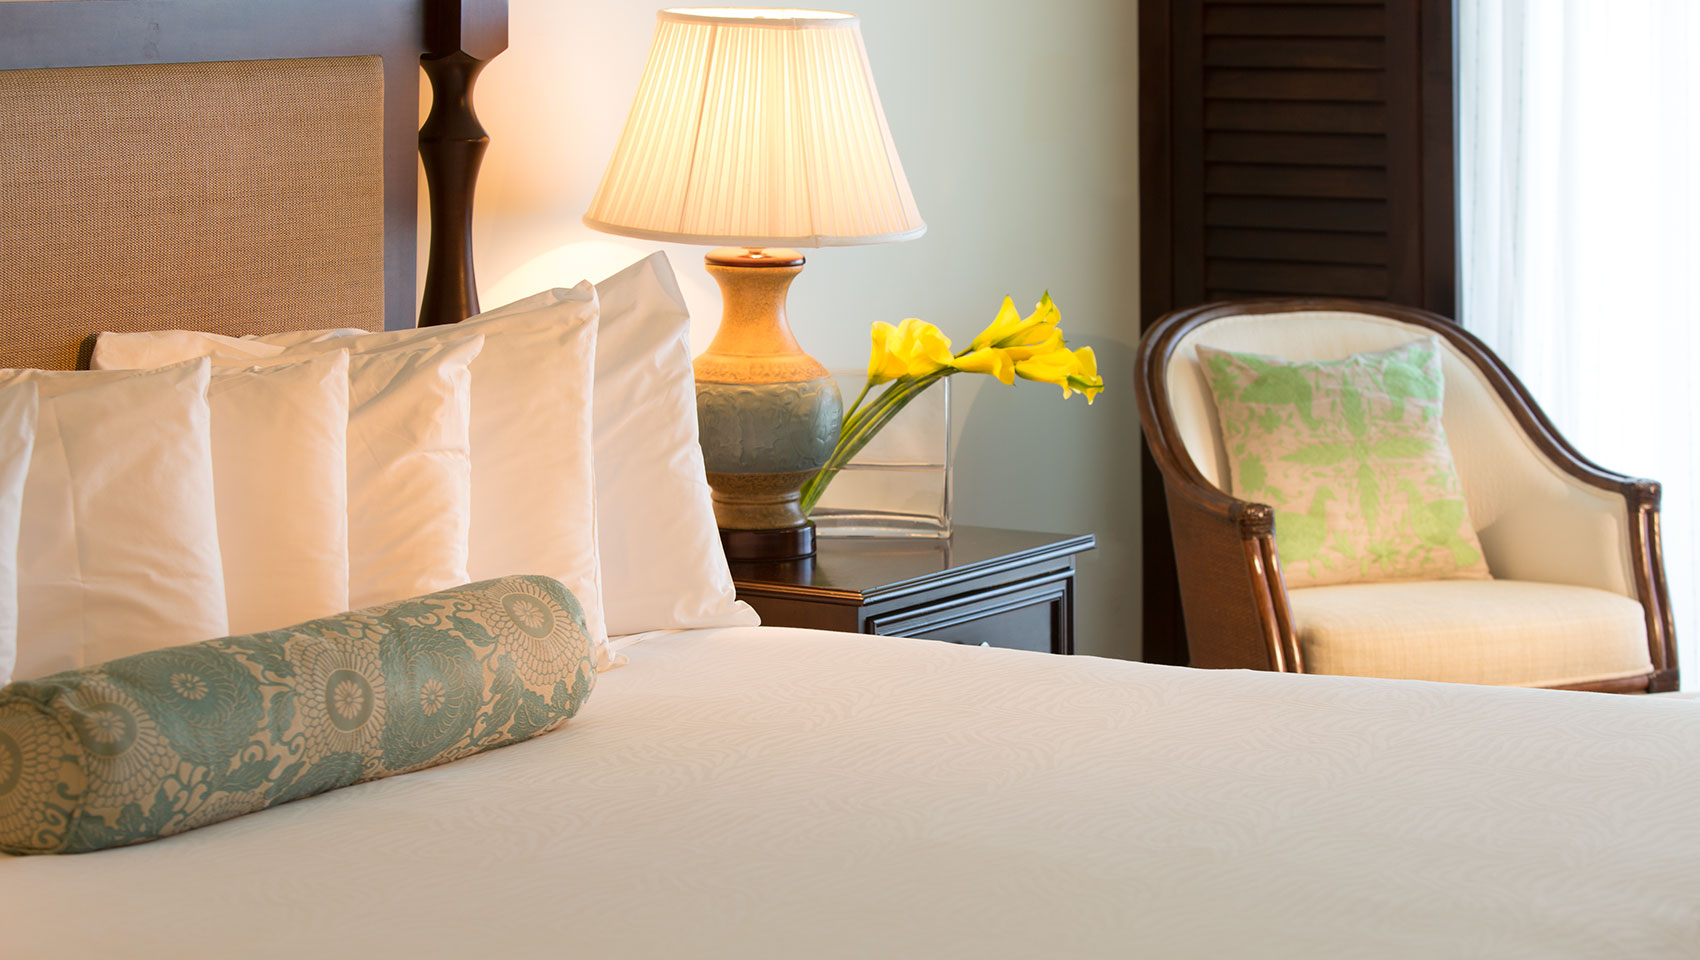 vero beach hotel and spa guest room